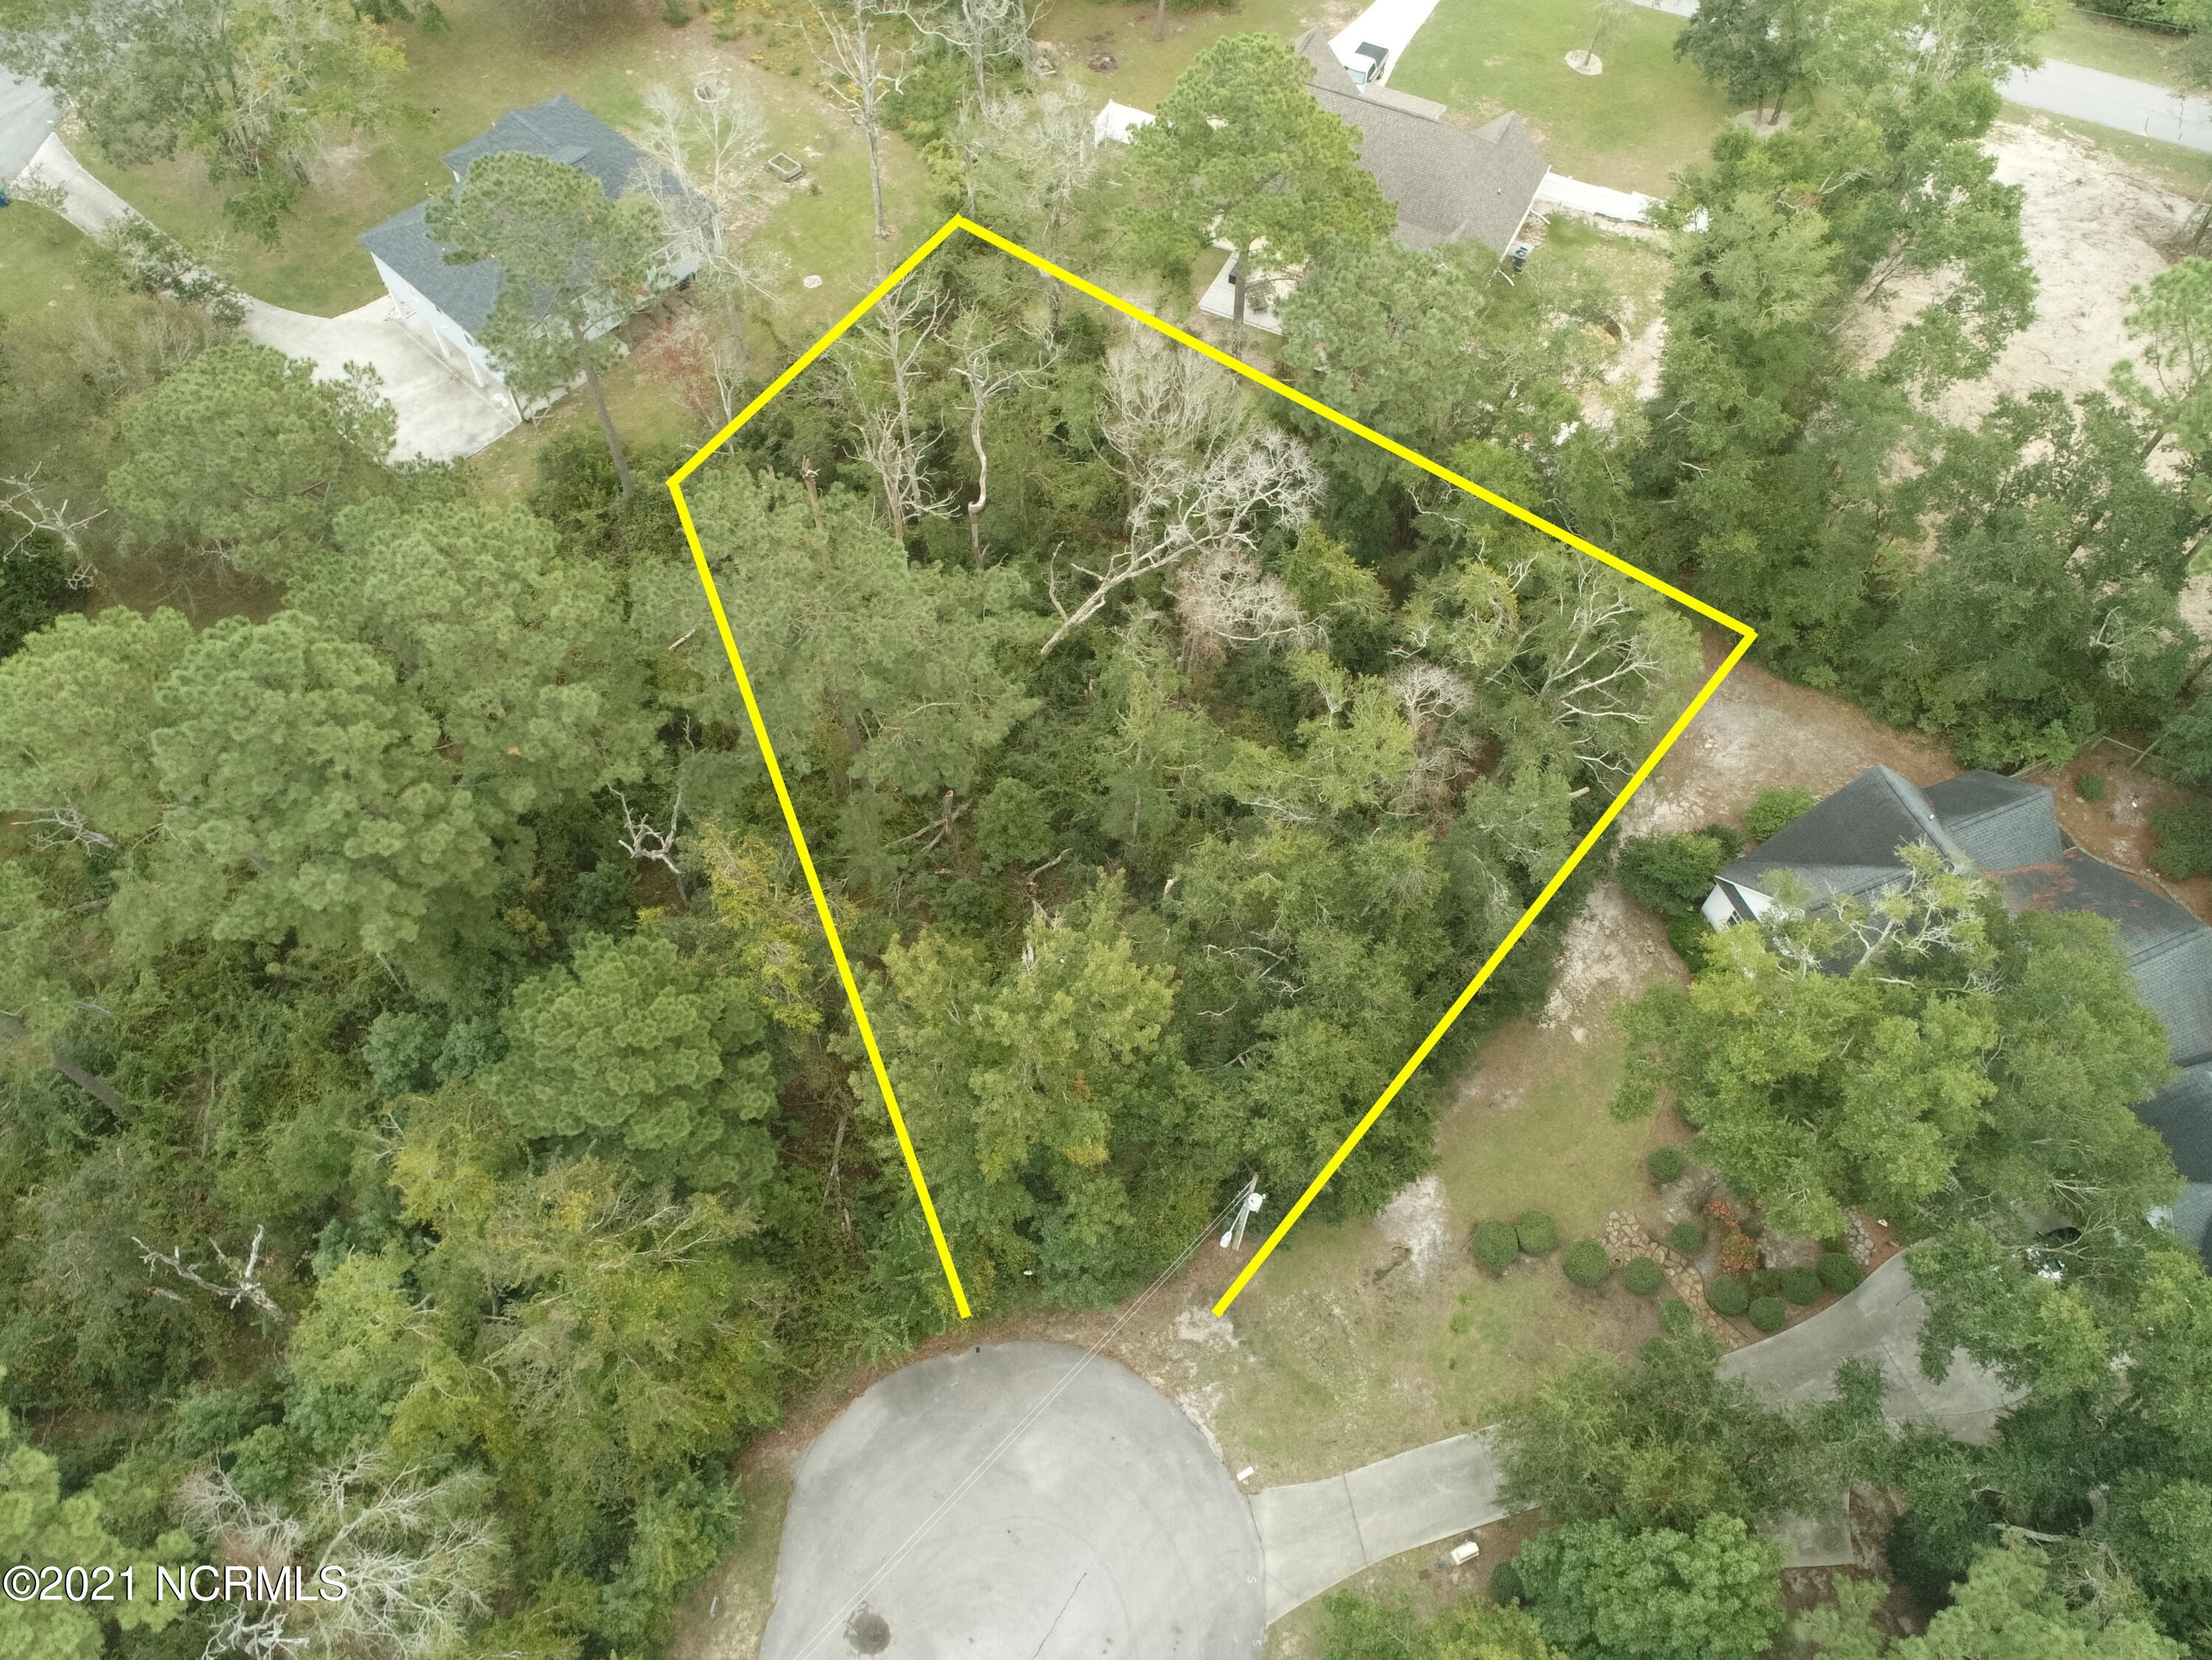 Looking a lot in the desired Chadwick Shores Waterfront Community to build your house to make your home then you may want to check out this lot. You may have water views depending on the placement of your house.